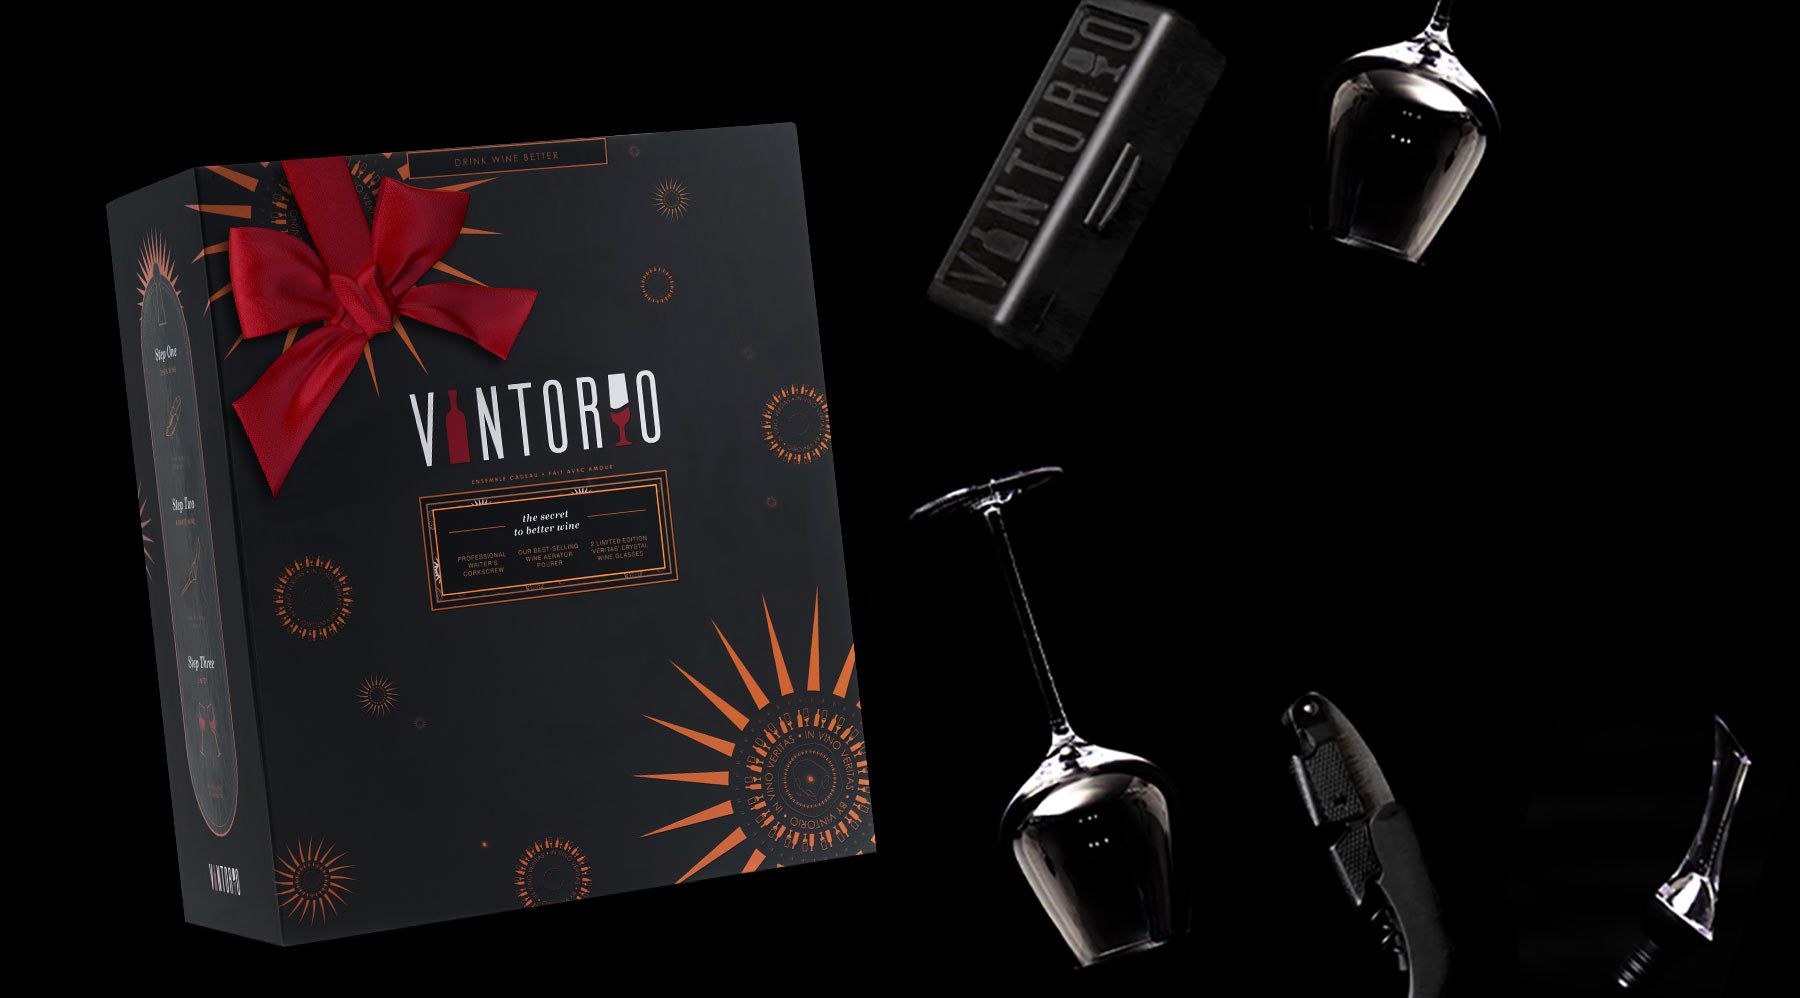 Vintorio Essential Wine Gift Set with Glasses, Aerator, and Corkscrew